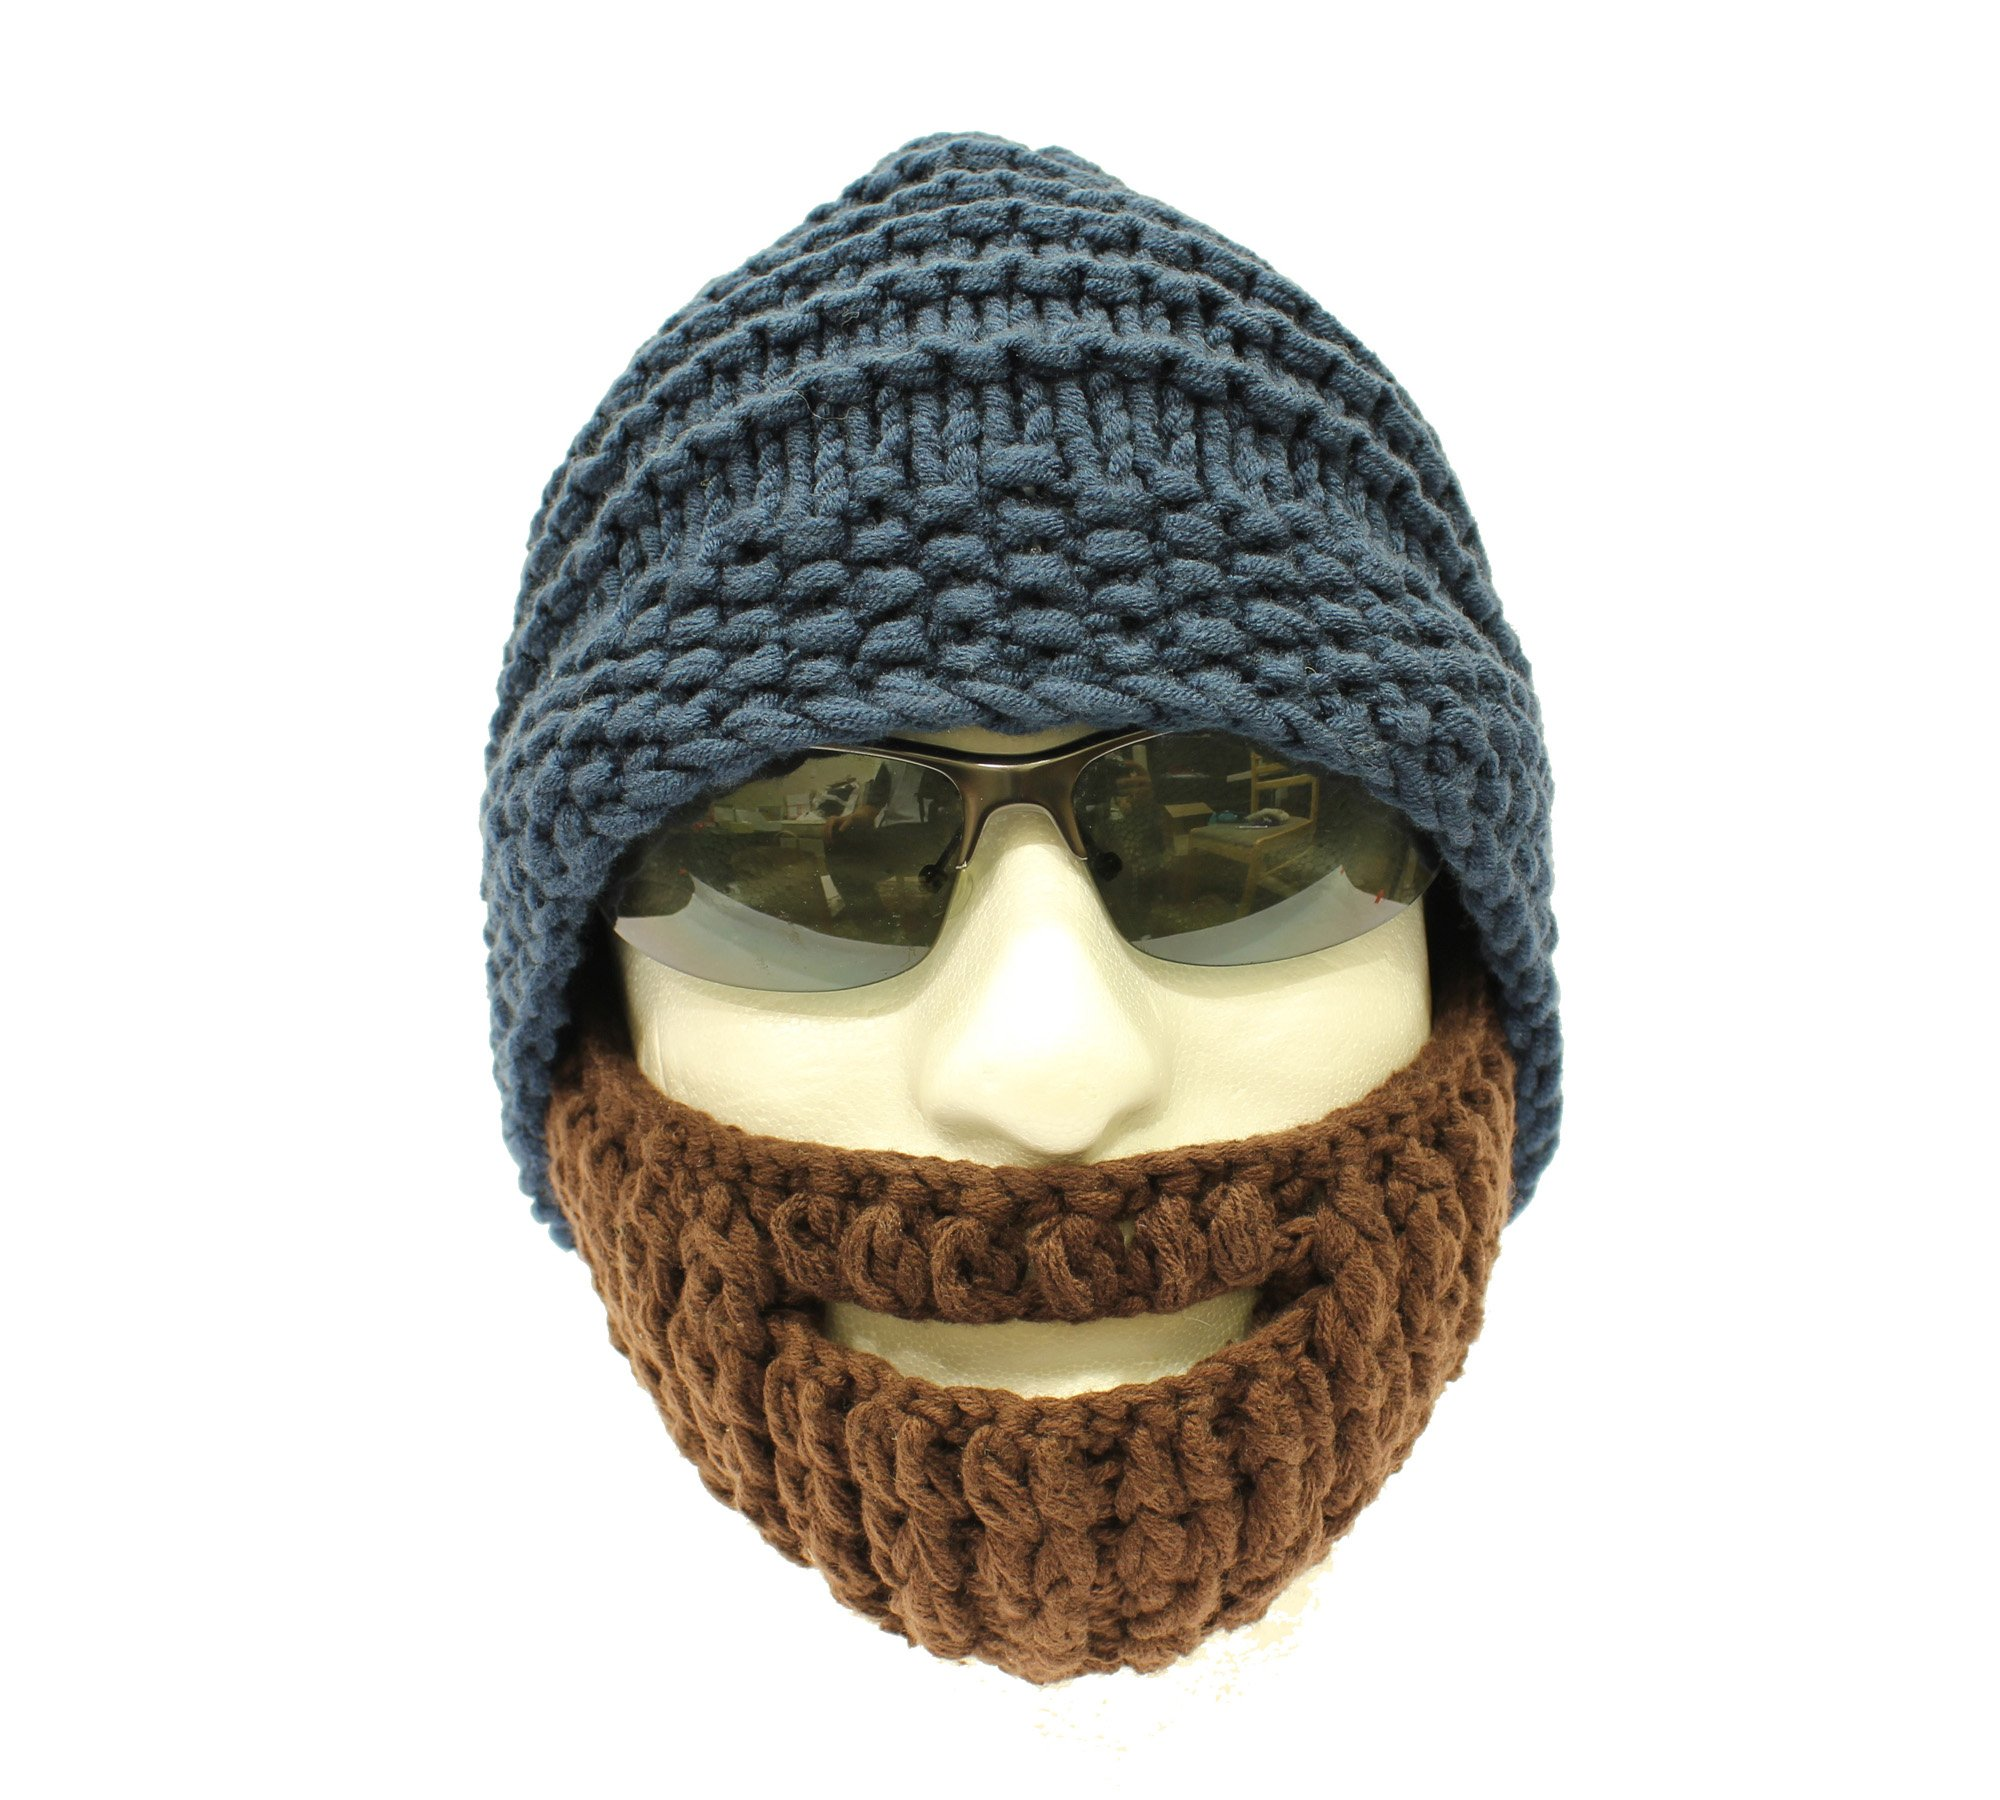 72e3fed47 Knitted Beard Hat, Hand Knitted Bearded Beanie Hat, with Brown Beard - Cool  Beanie Hats